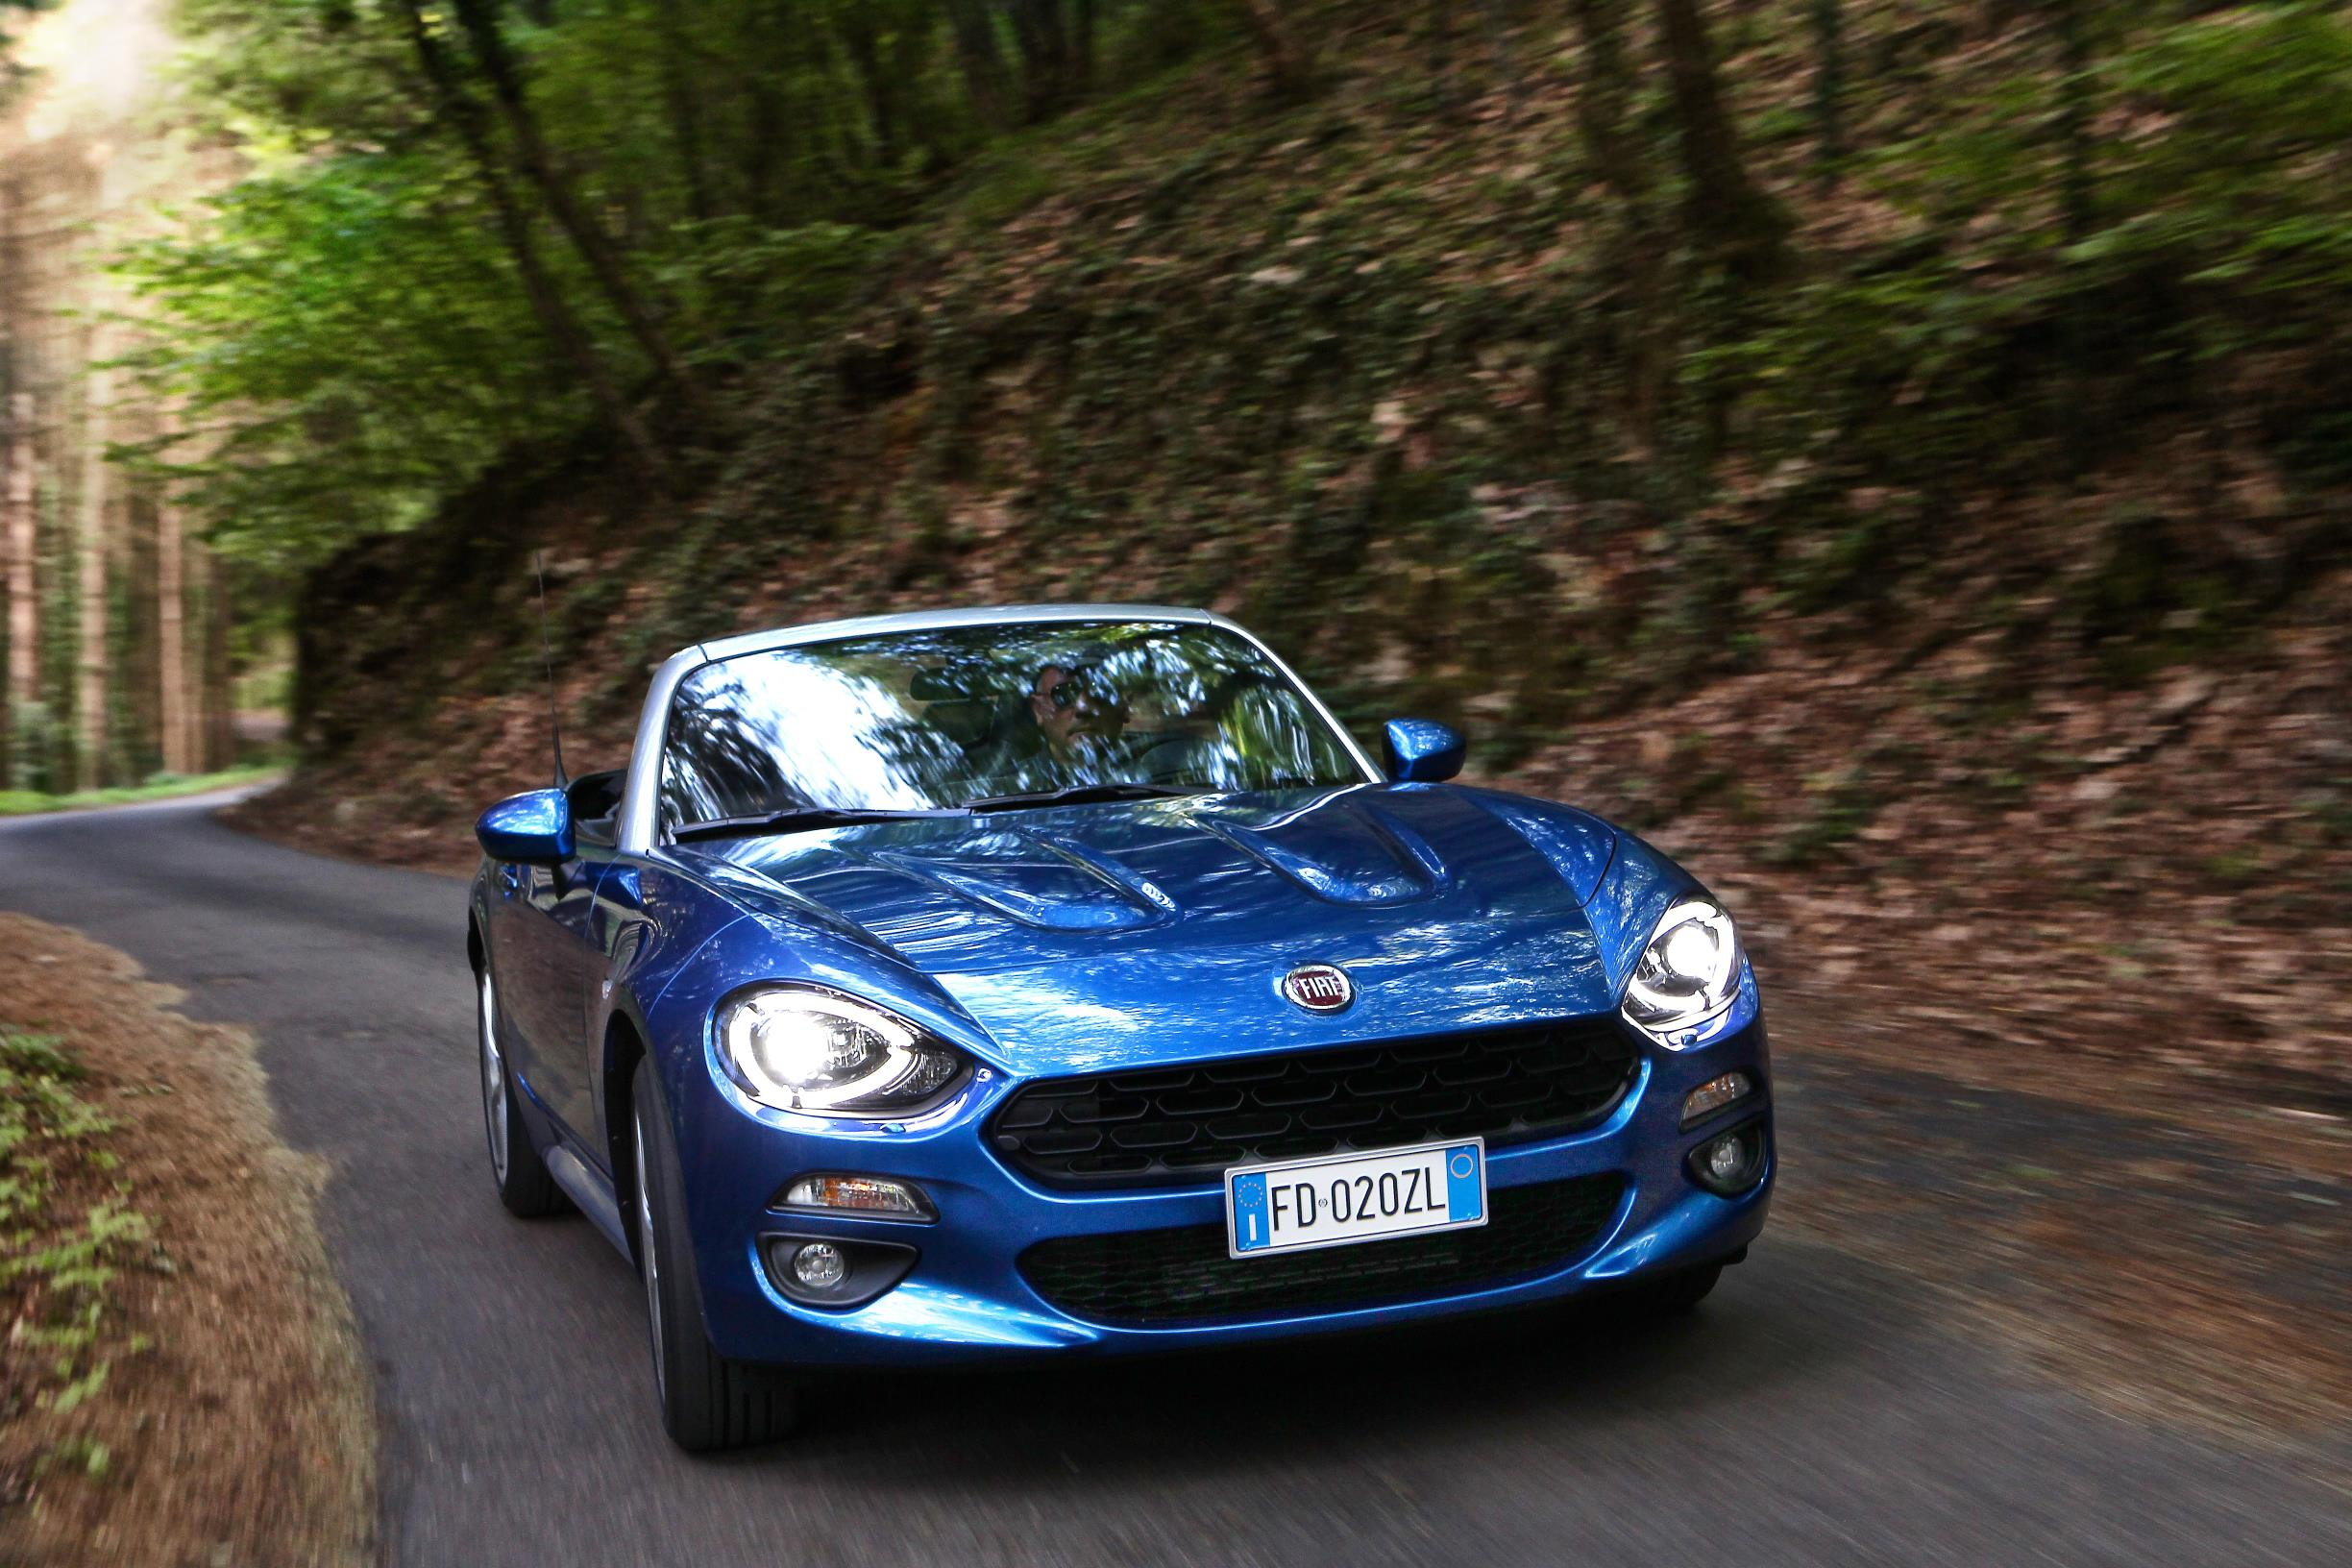 2017 fiat 124 spider launched in europe abarth priced at 40 000 autoevolution. Black Bedroom Furniture Sets. Home Design Ideas